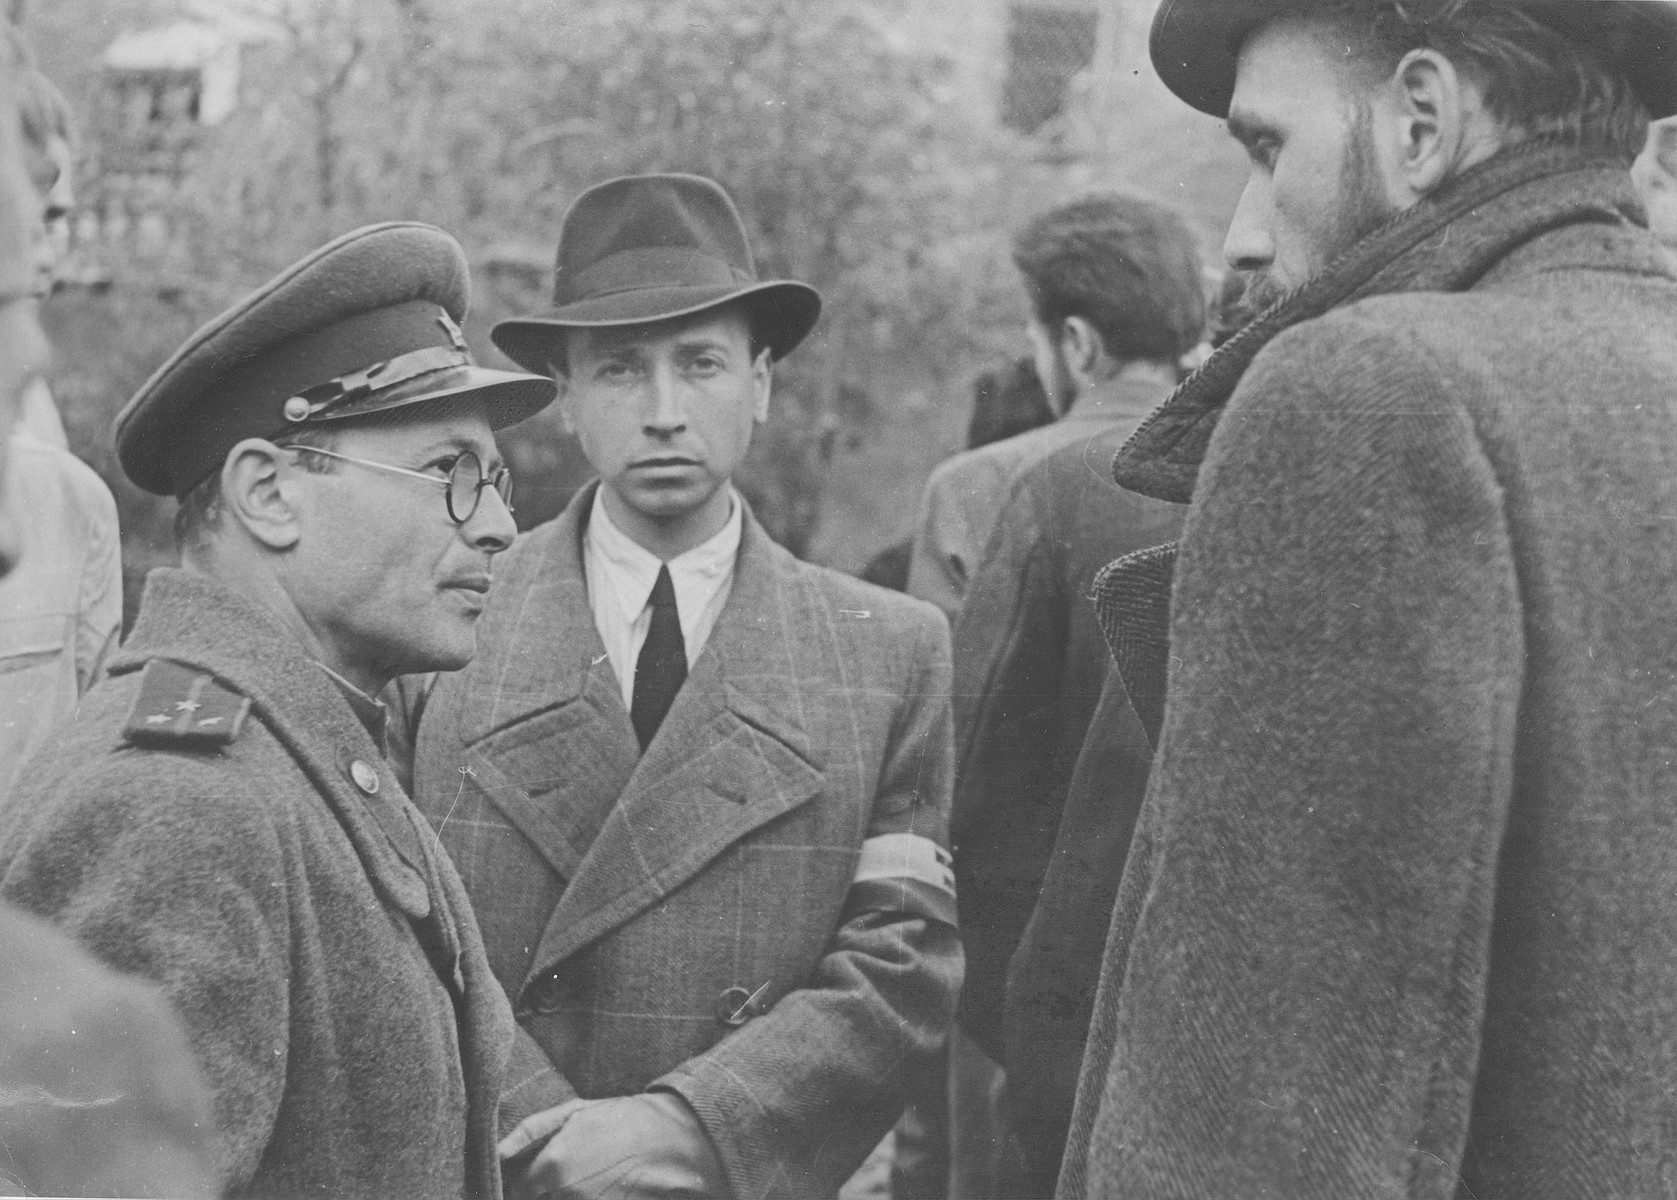 Hungarian communist officials at the site of the Maros street hospital massacre.  Pictured at the left is the photographer Sandor Ek, a Hungarian officer in the Russian Army.